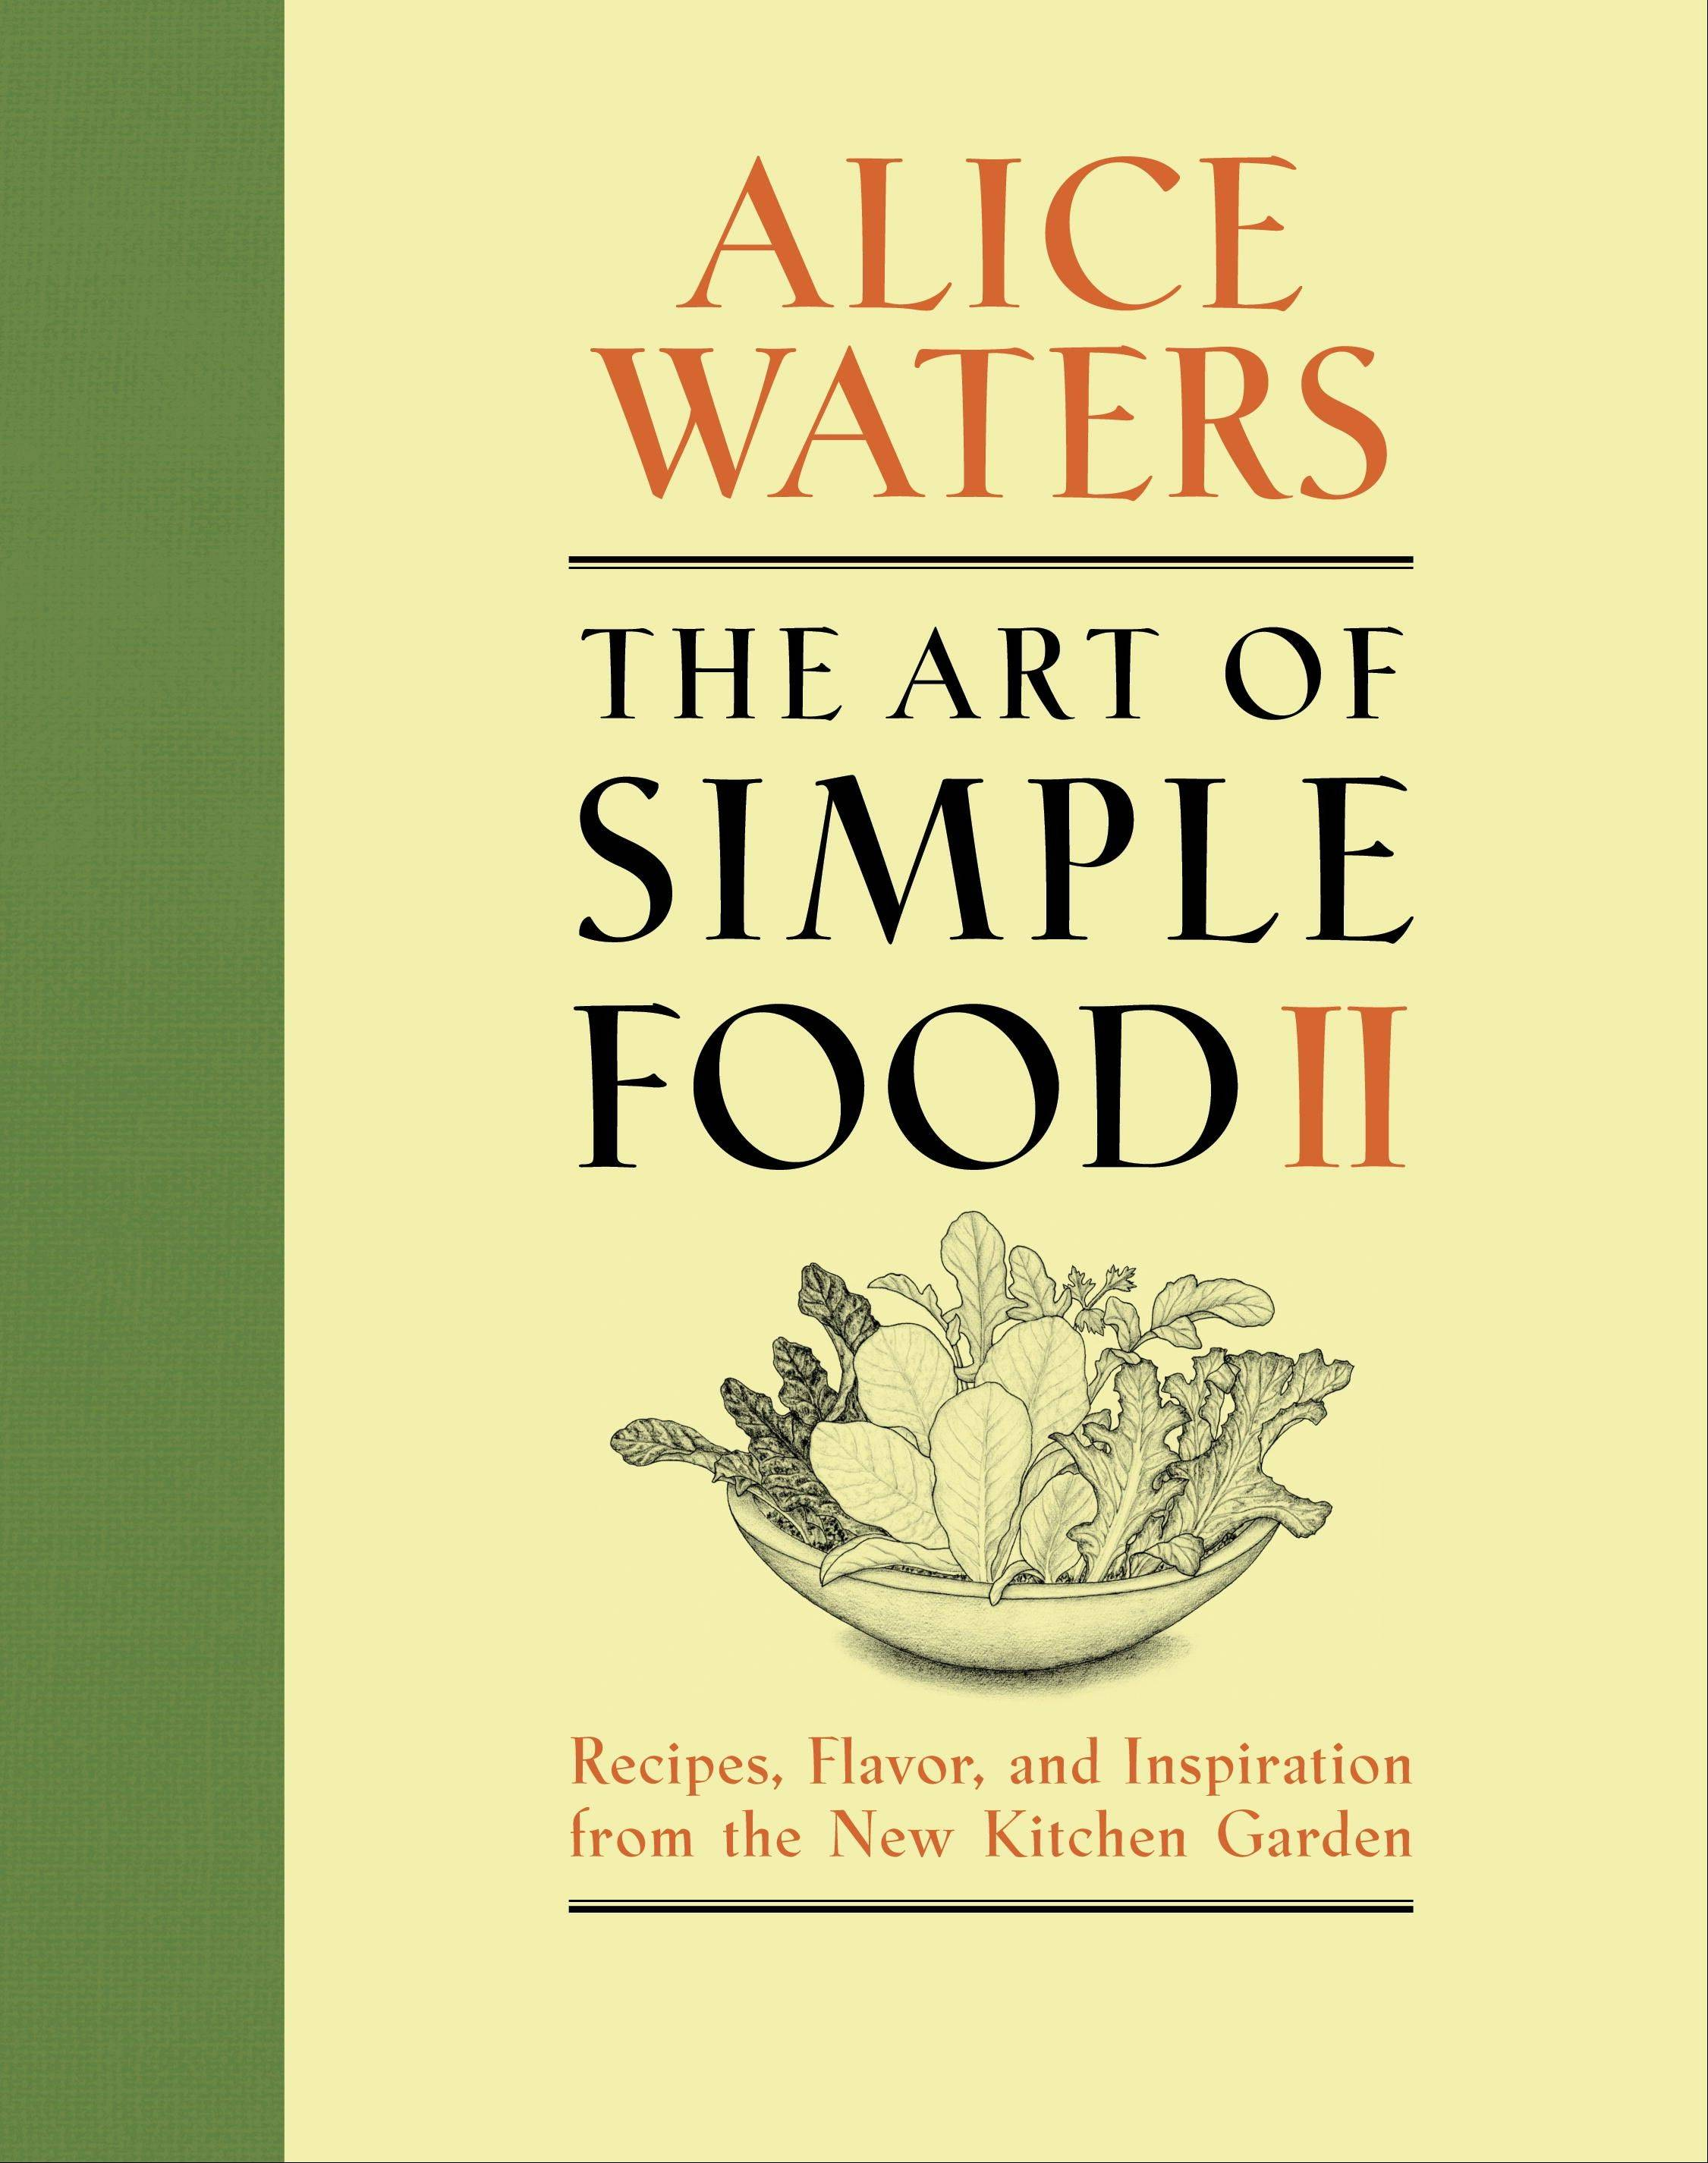 """The Art of Simple Food II"" by Alice Waters"